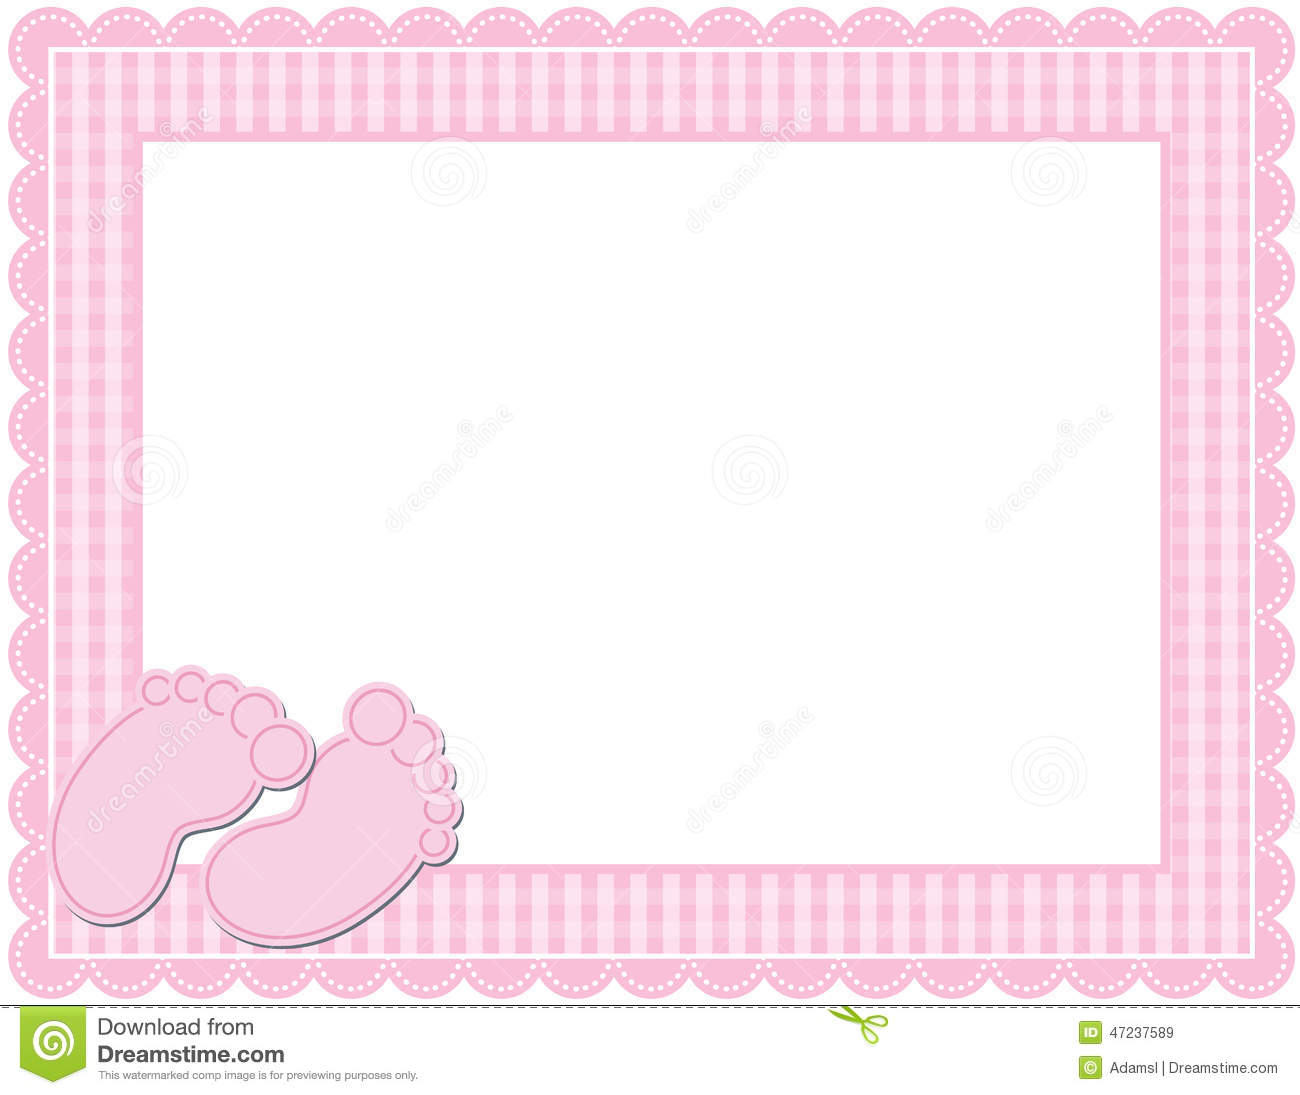 Baby Girl Gingham Frame Illustration 47237589 - Megapixl